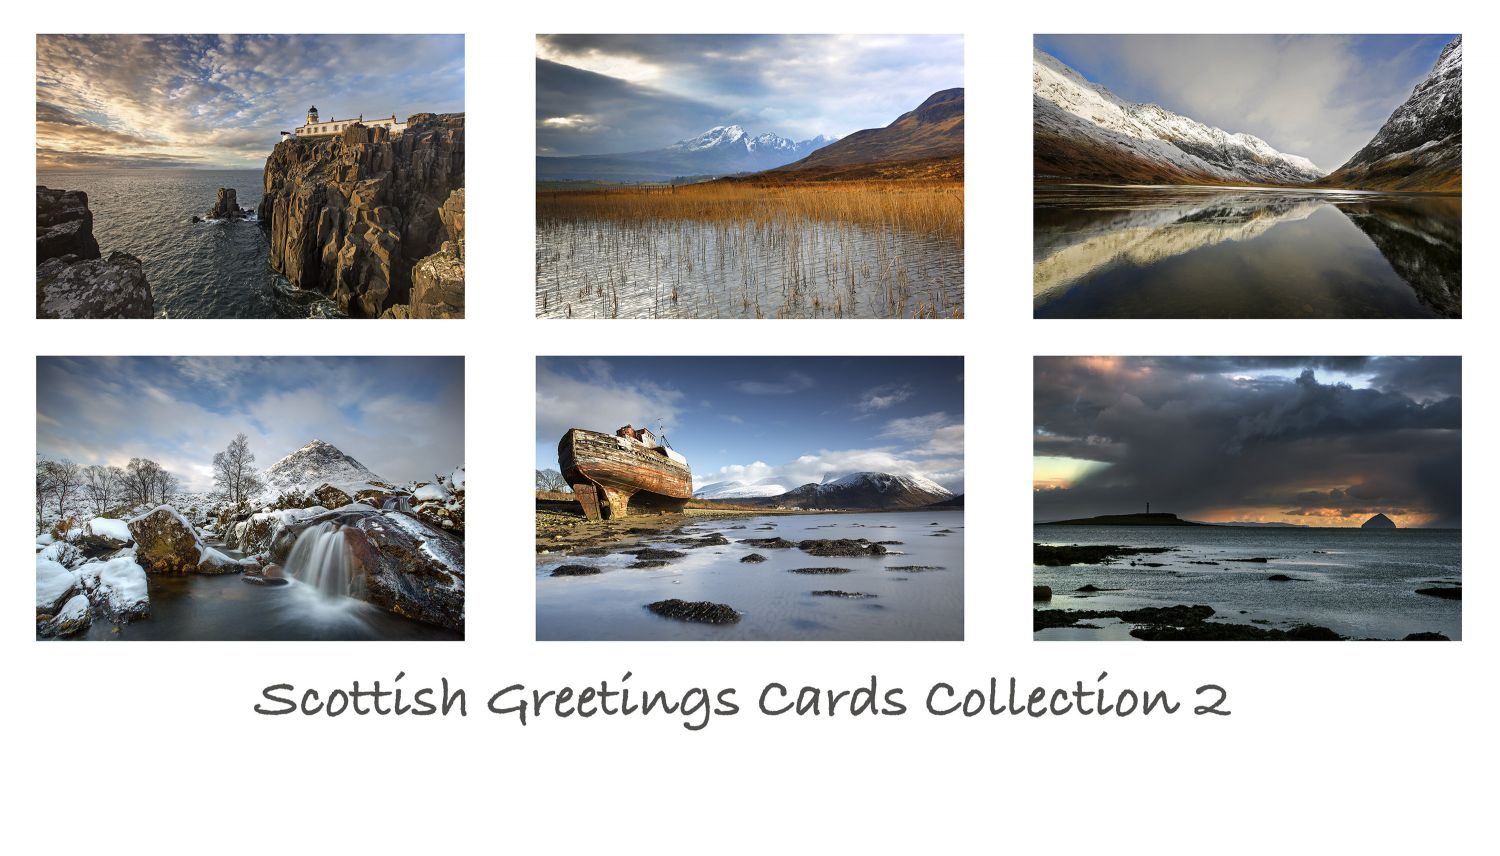 A pack of 6 Scottish Greeting cards featuring stunning images of some of Scotland's most famous locations including Glencoe, Isle of Skye and Isle of Arran